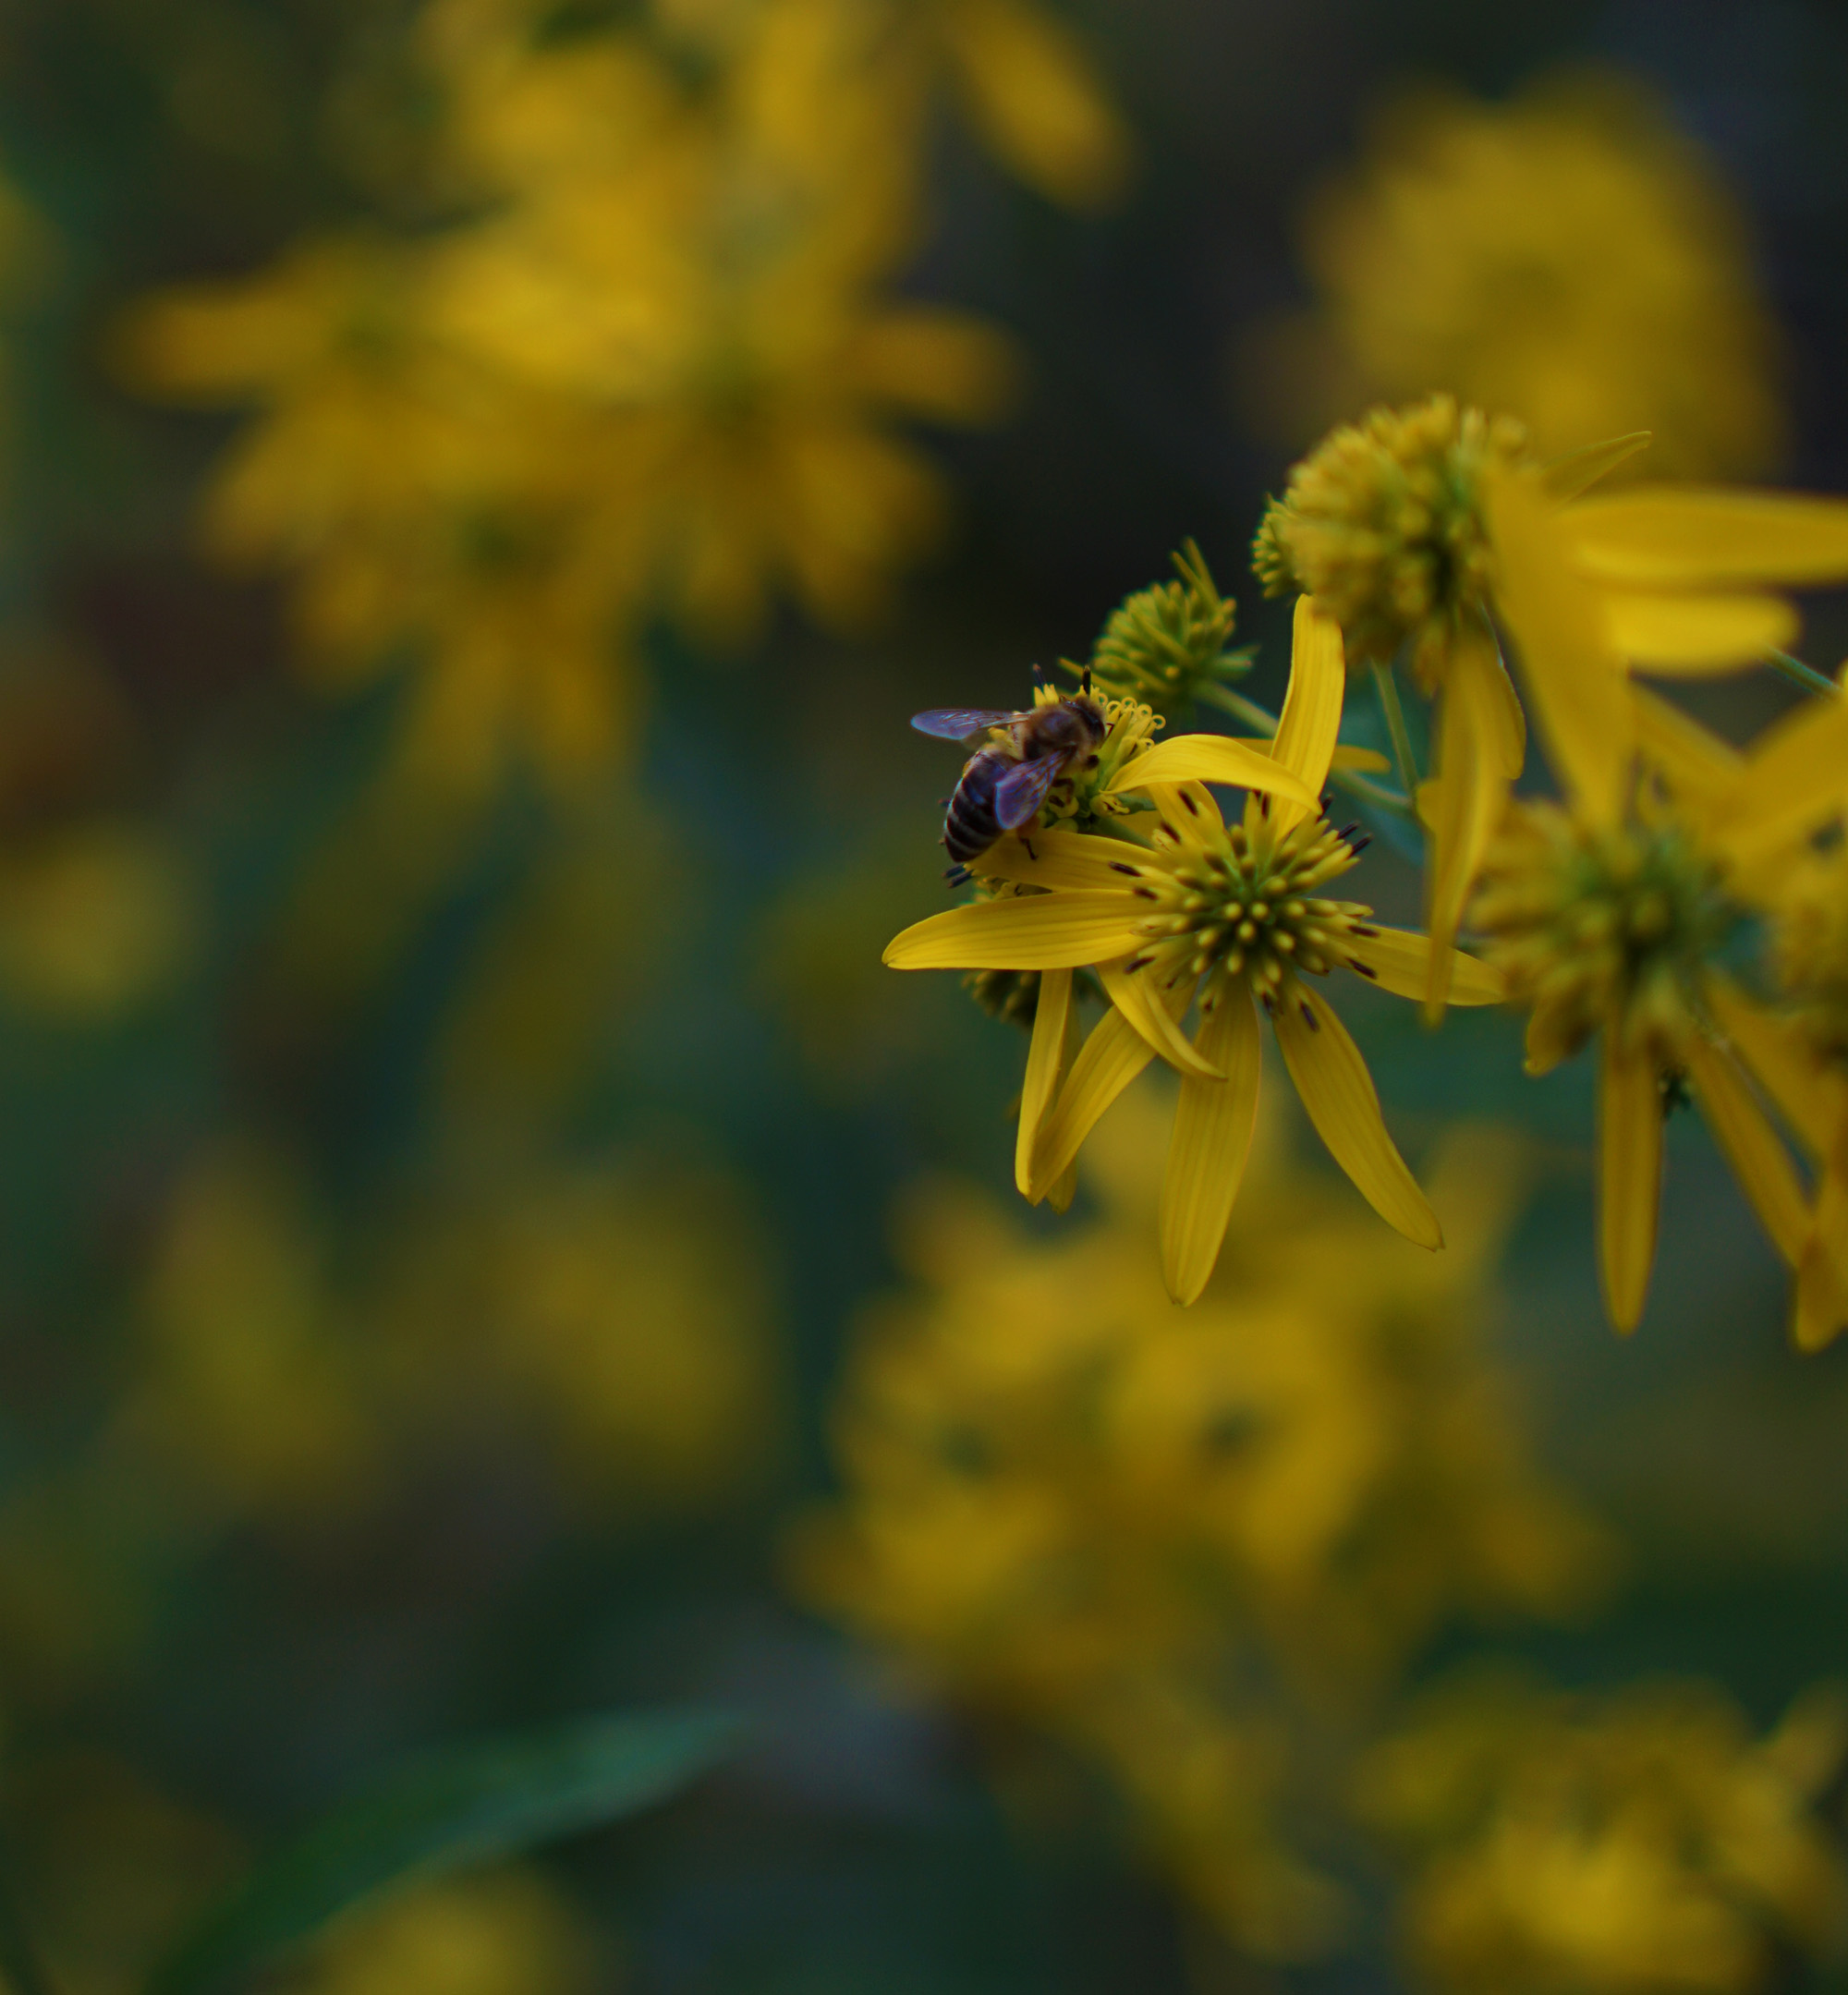 Bee on flowers, North Park Village Nature Center / Darker than Green